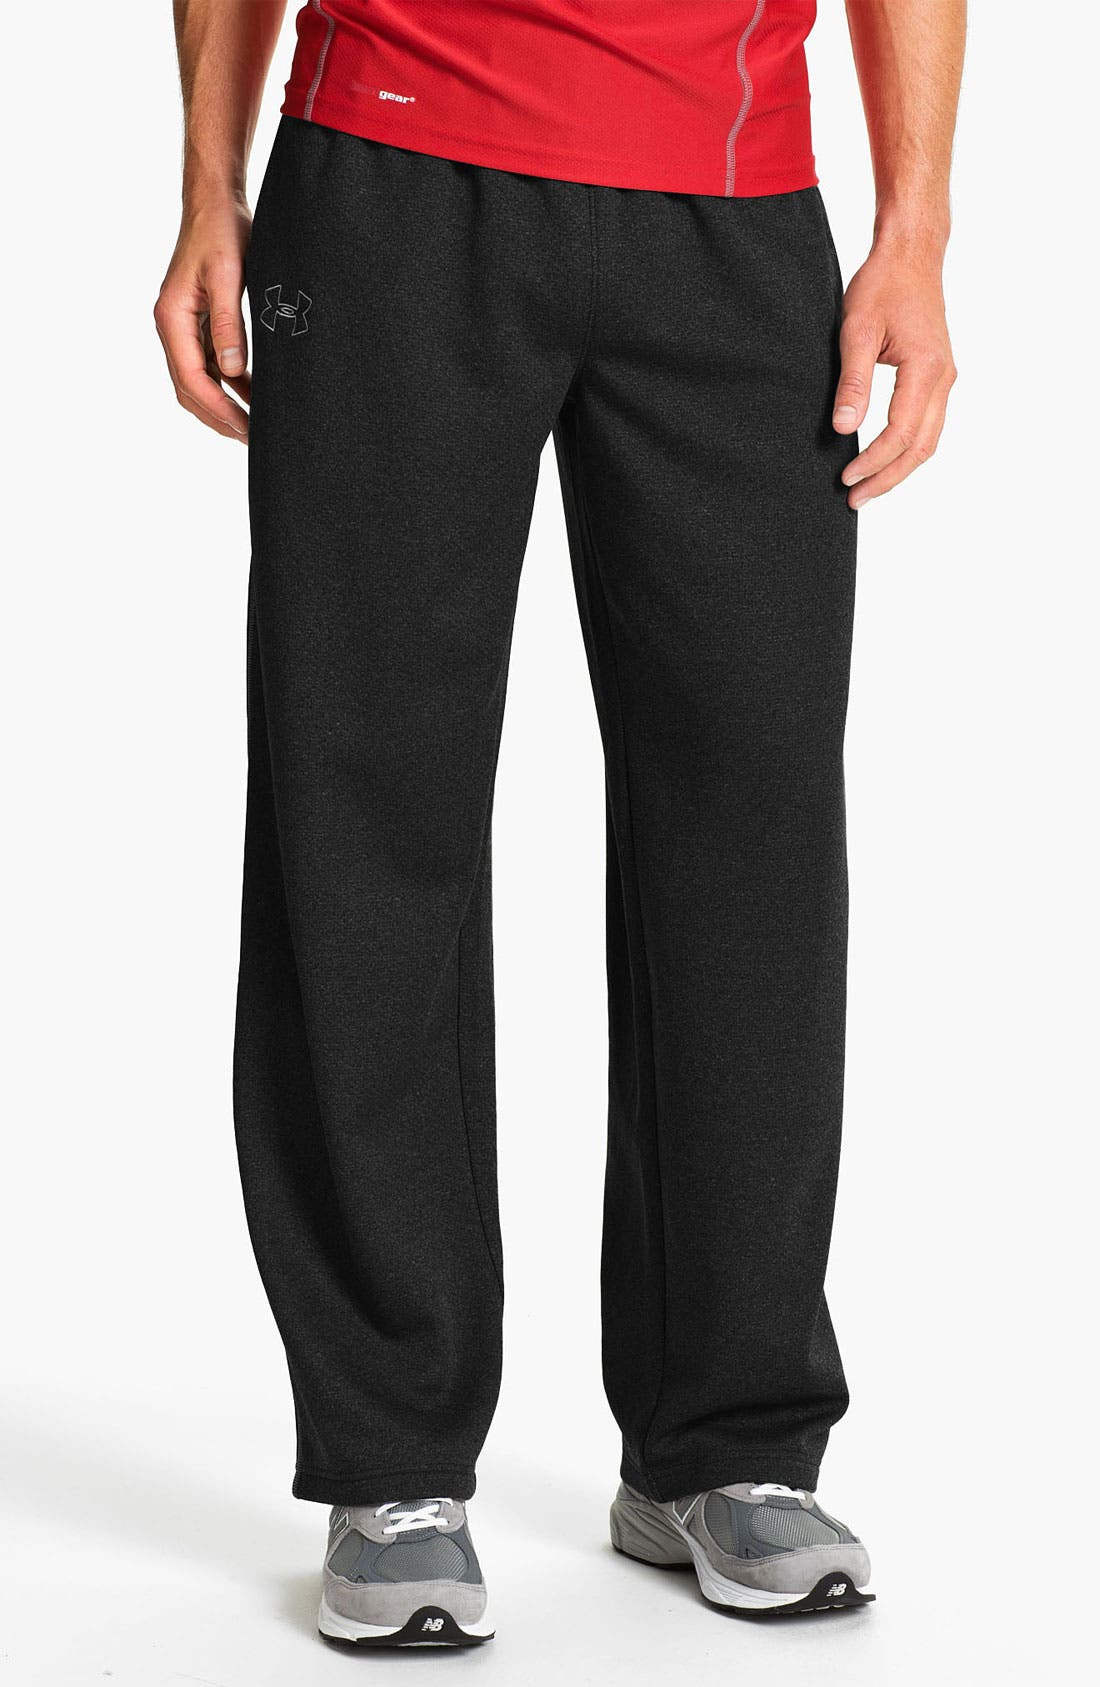 Alternate Image 1 Selected - Under Armour Tech Fleece Track Pants